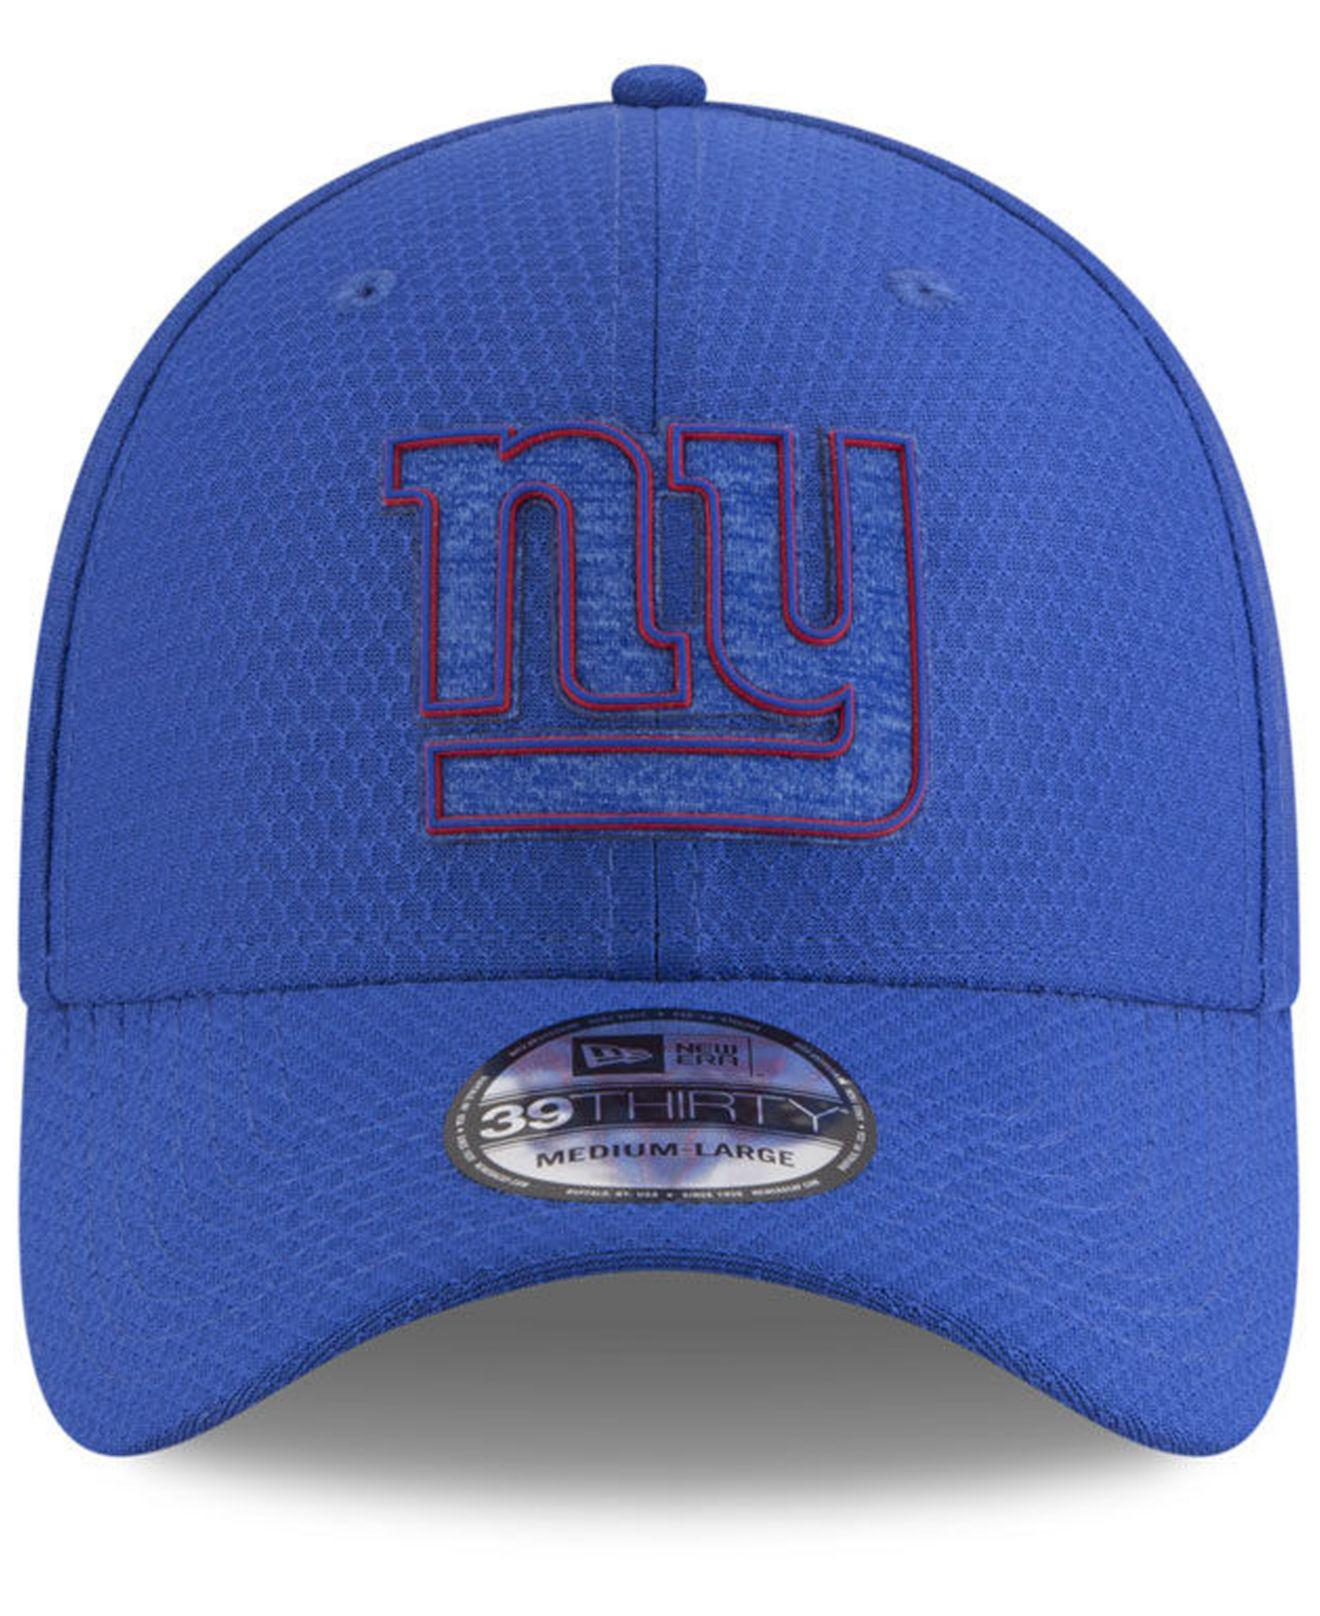 7fd2be150 Lyst - Ktz New York Giants Training Camp 39thirty Stretch Fitted Cap 2018  in Blue for Men